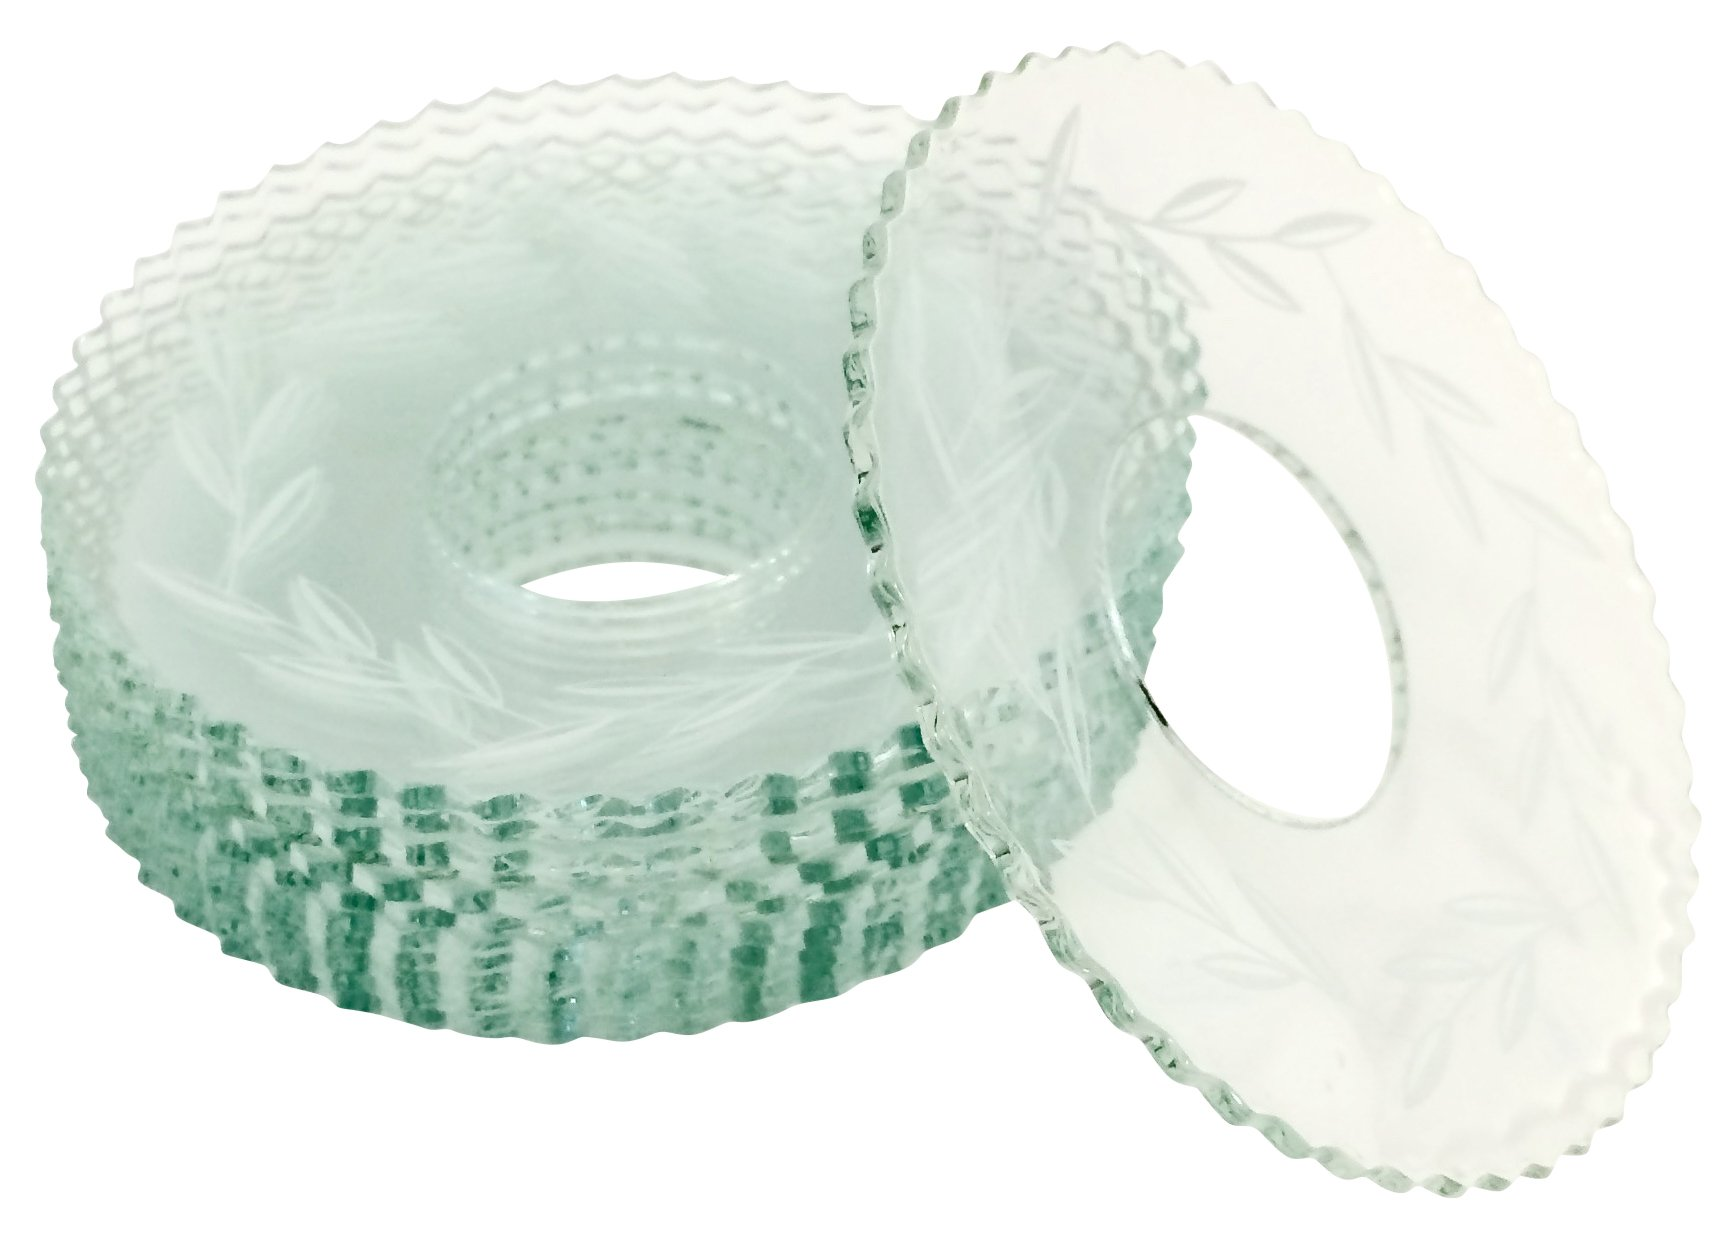 Biedermann & Sons 12 Count Bobeches Glass with Etched Leaves, Clear by Biedermann & Sons (Image #1)